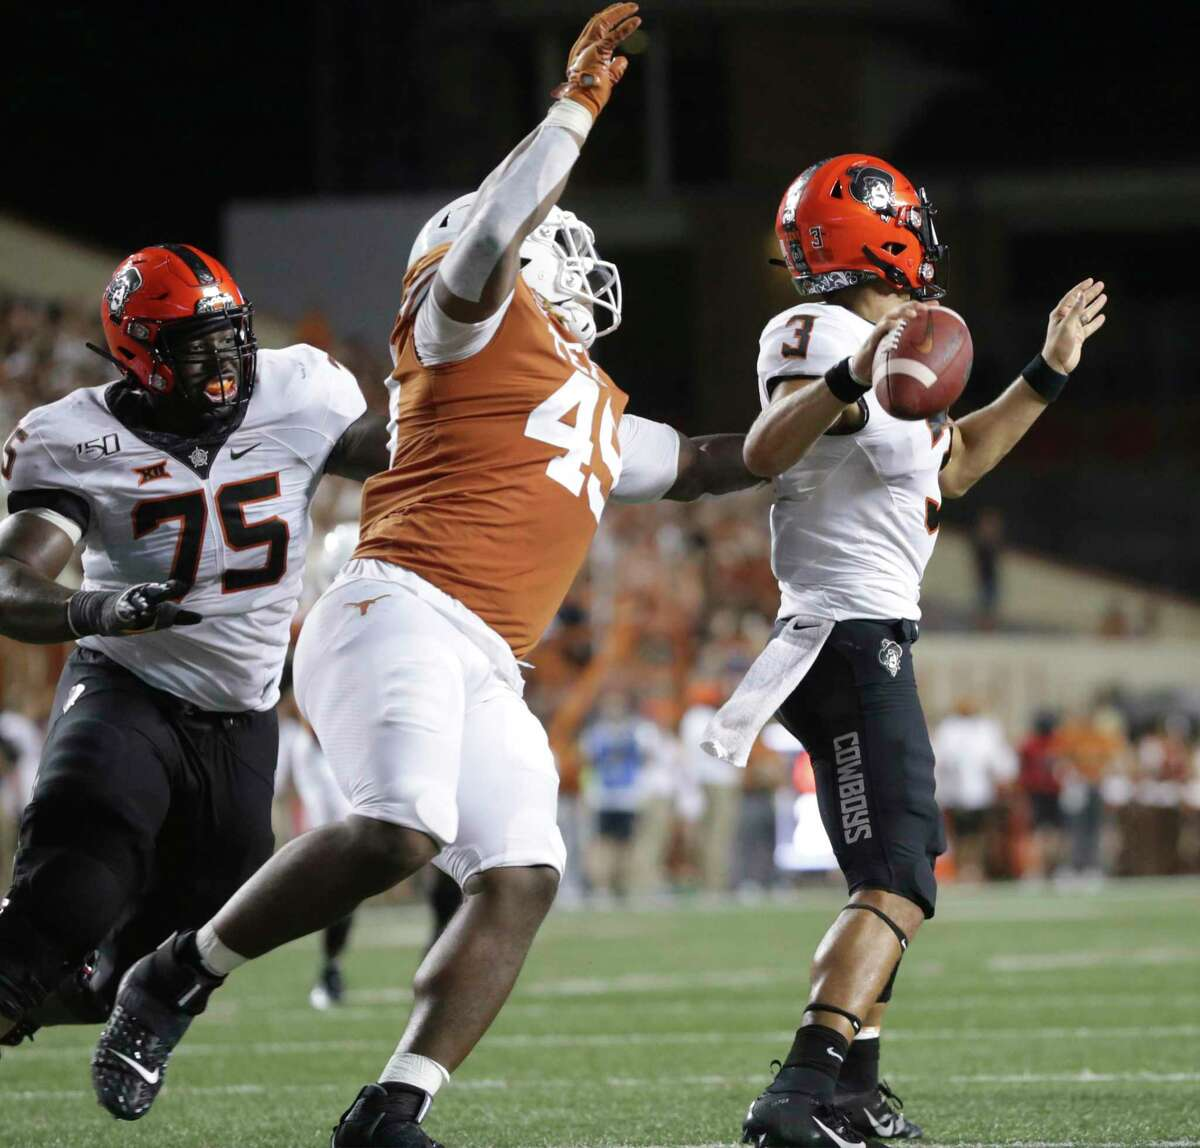 Horn's defensive linemane Ta'Quon Graham gets around the back side of Cowboys quarterback Spencer Sanders to deflect his pass as Texas hosts Oklahoma State University at DKR Royal Stadium in Austin on Sept. 21, 2019.